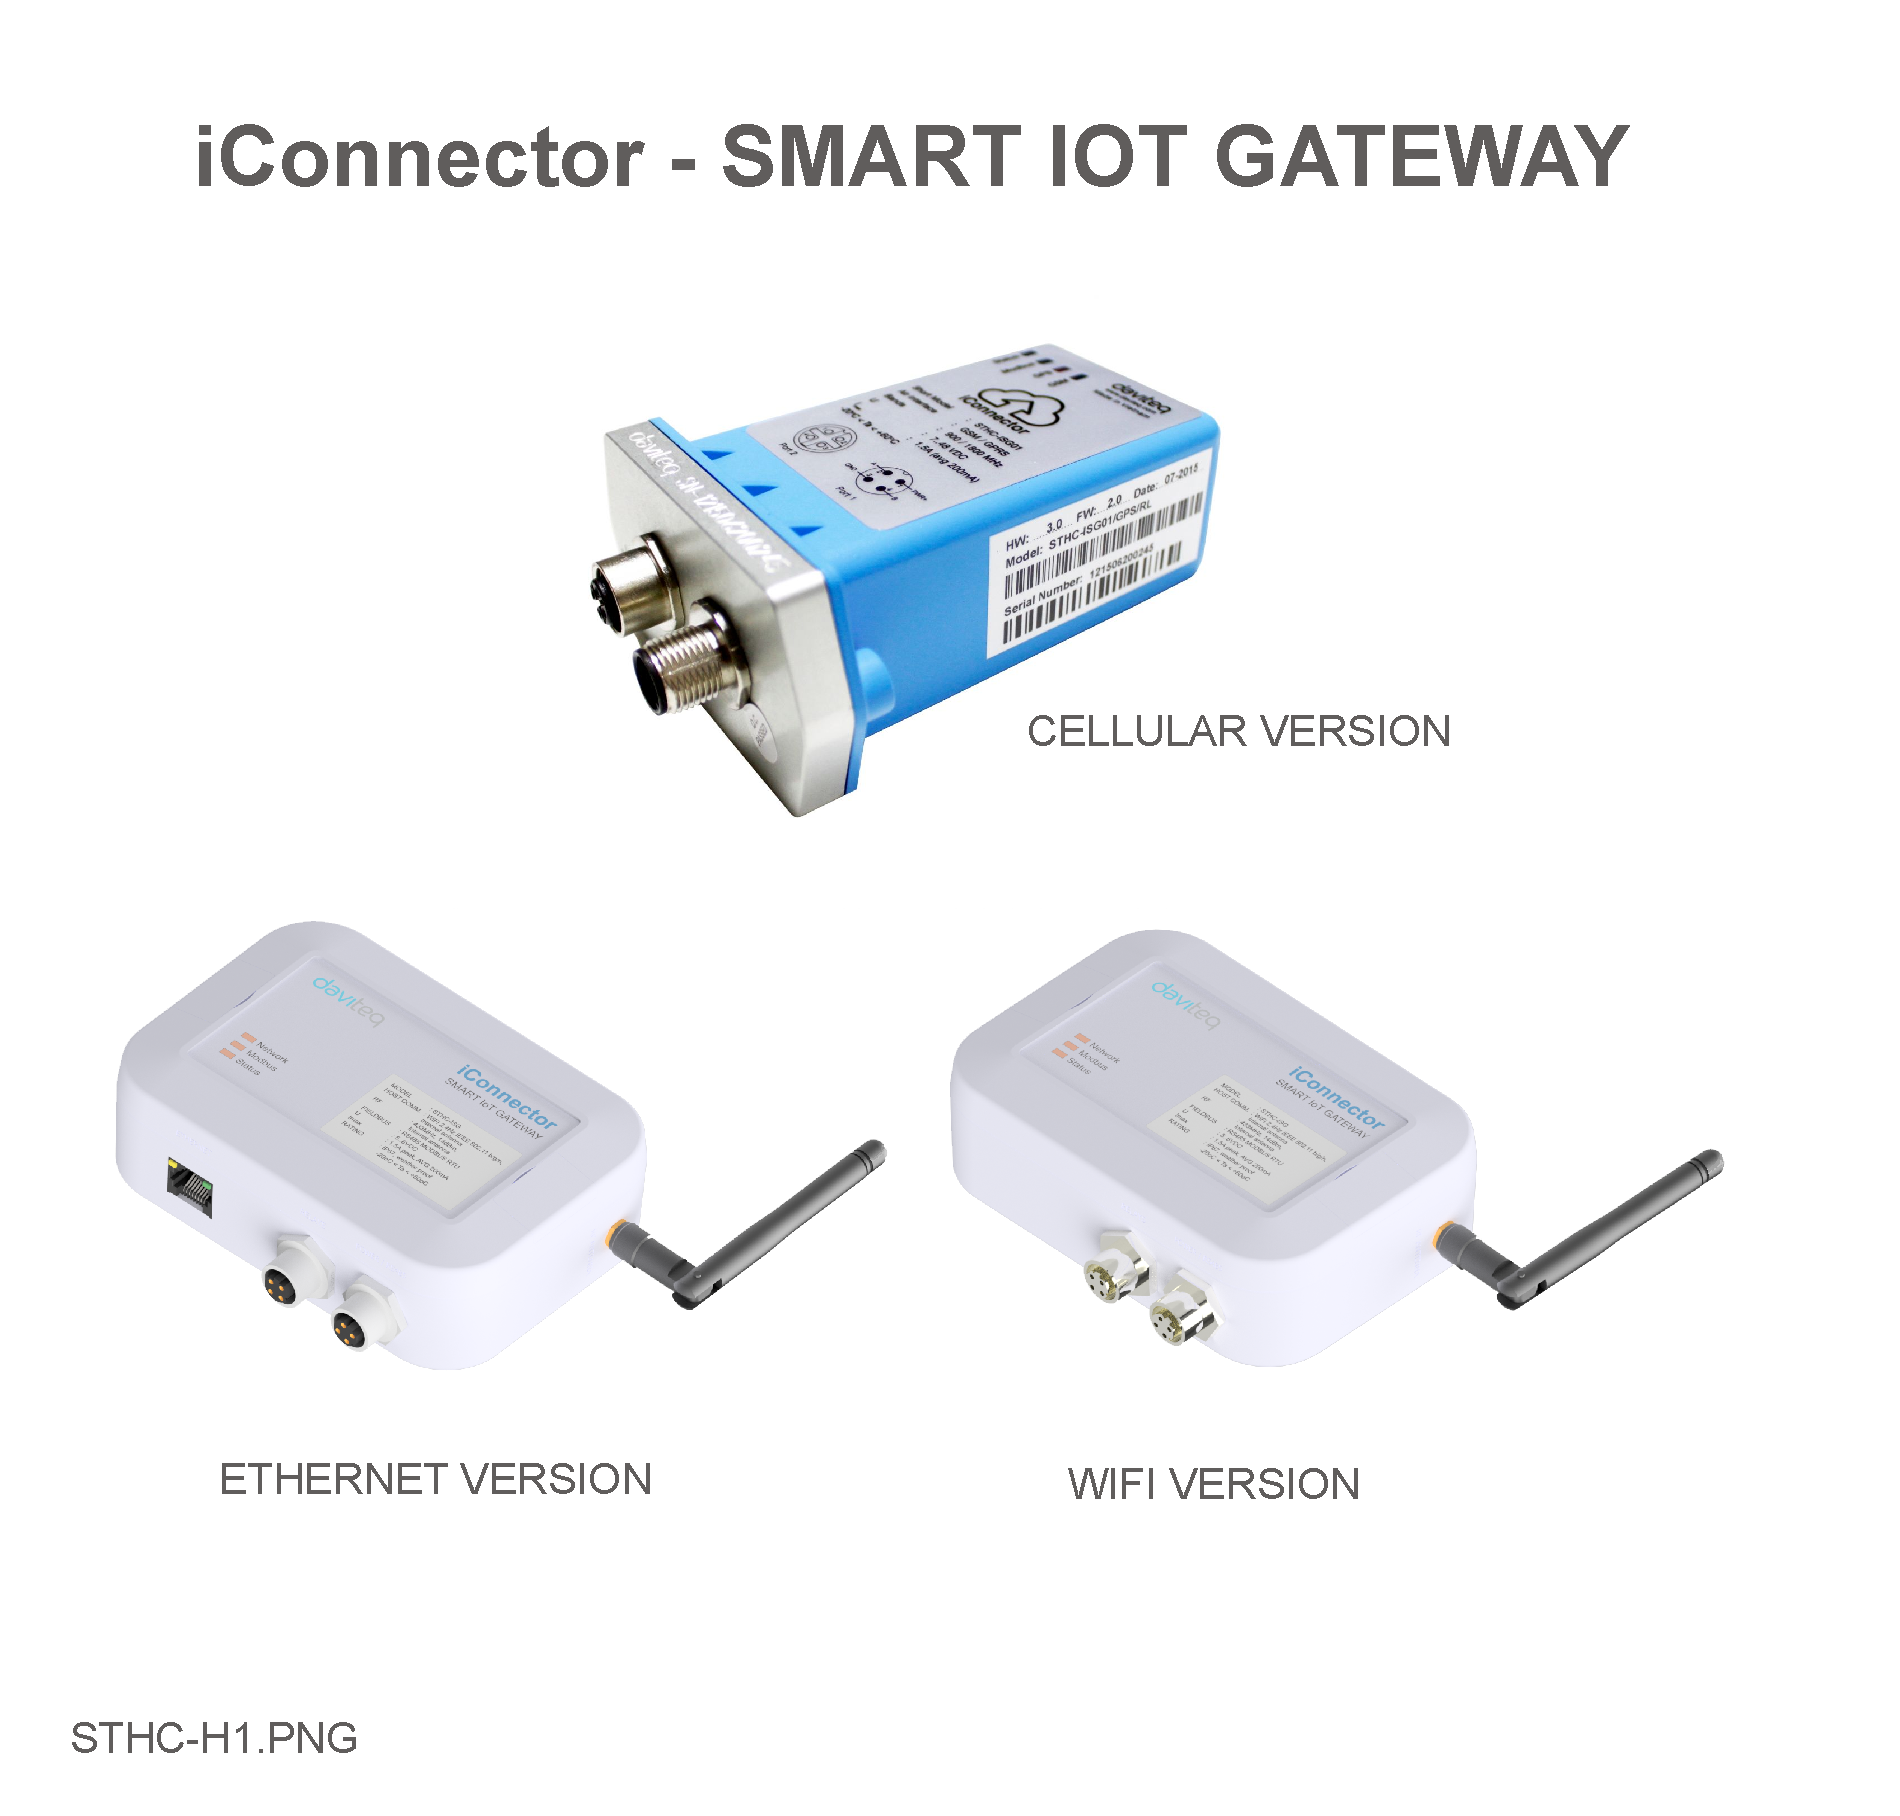 Smart IoT Gateway - iConnector